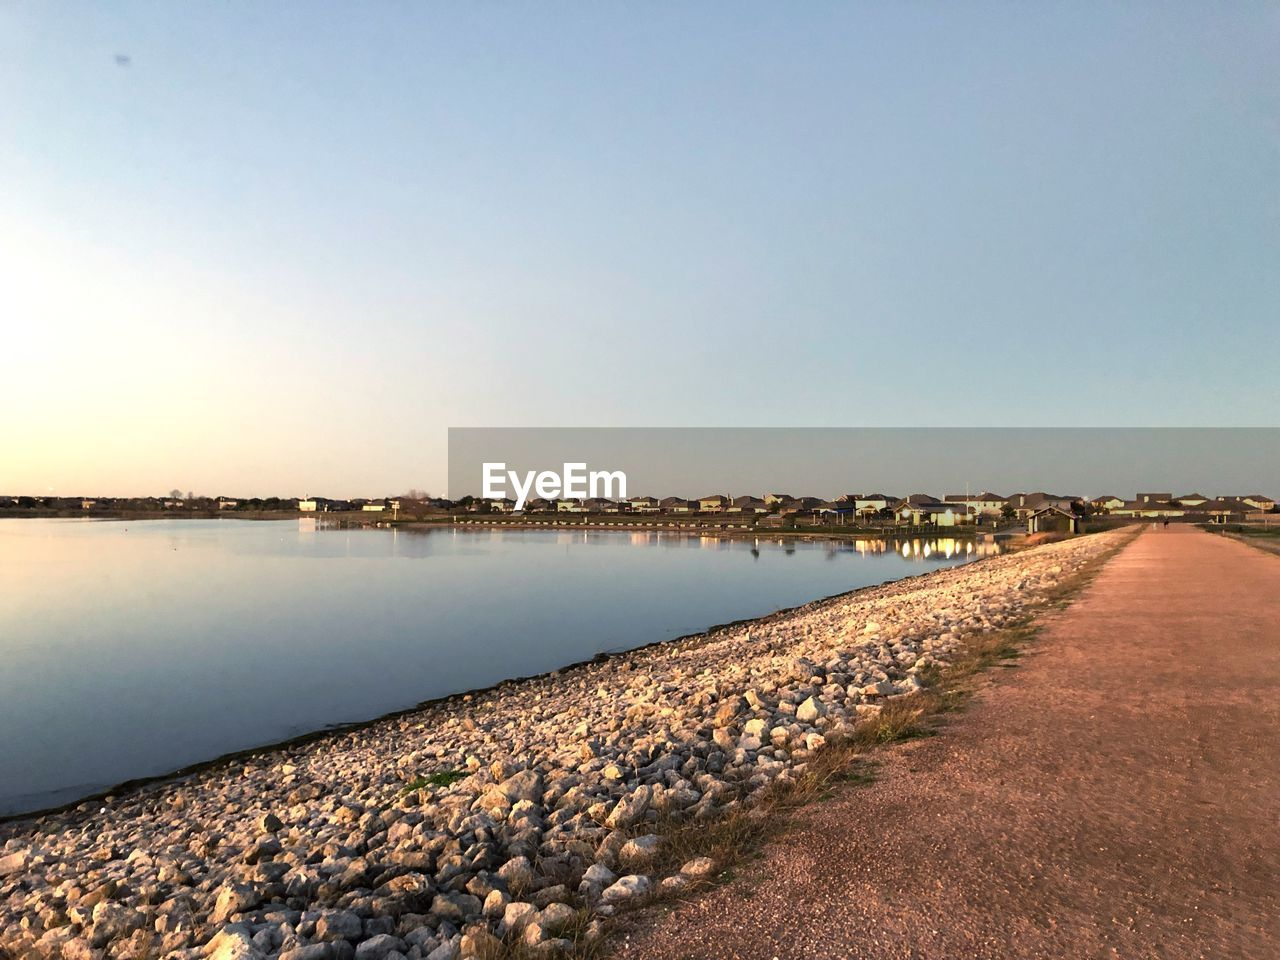 water, sky, tranquility, tranquil scene, scenics - nature, nature, beauty in nature, clear sky, copy space, no people, solid, day, rock, idyllic, lake, non-urban scene, outdoors, beach, groyne